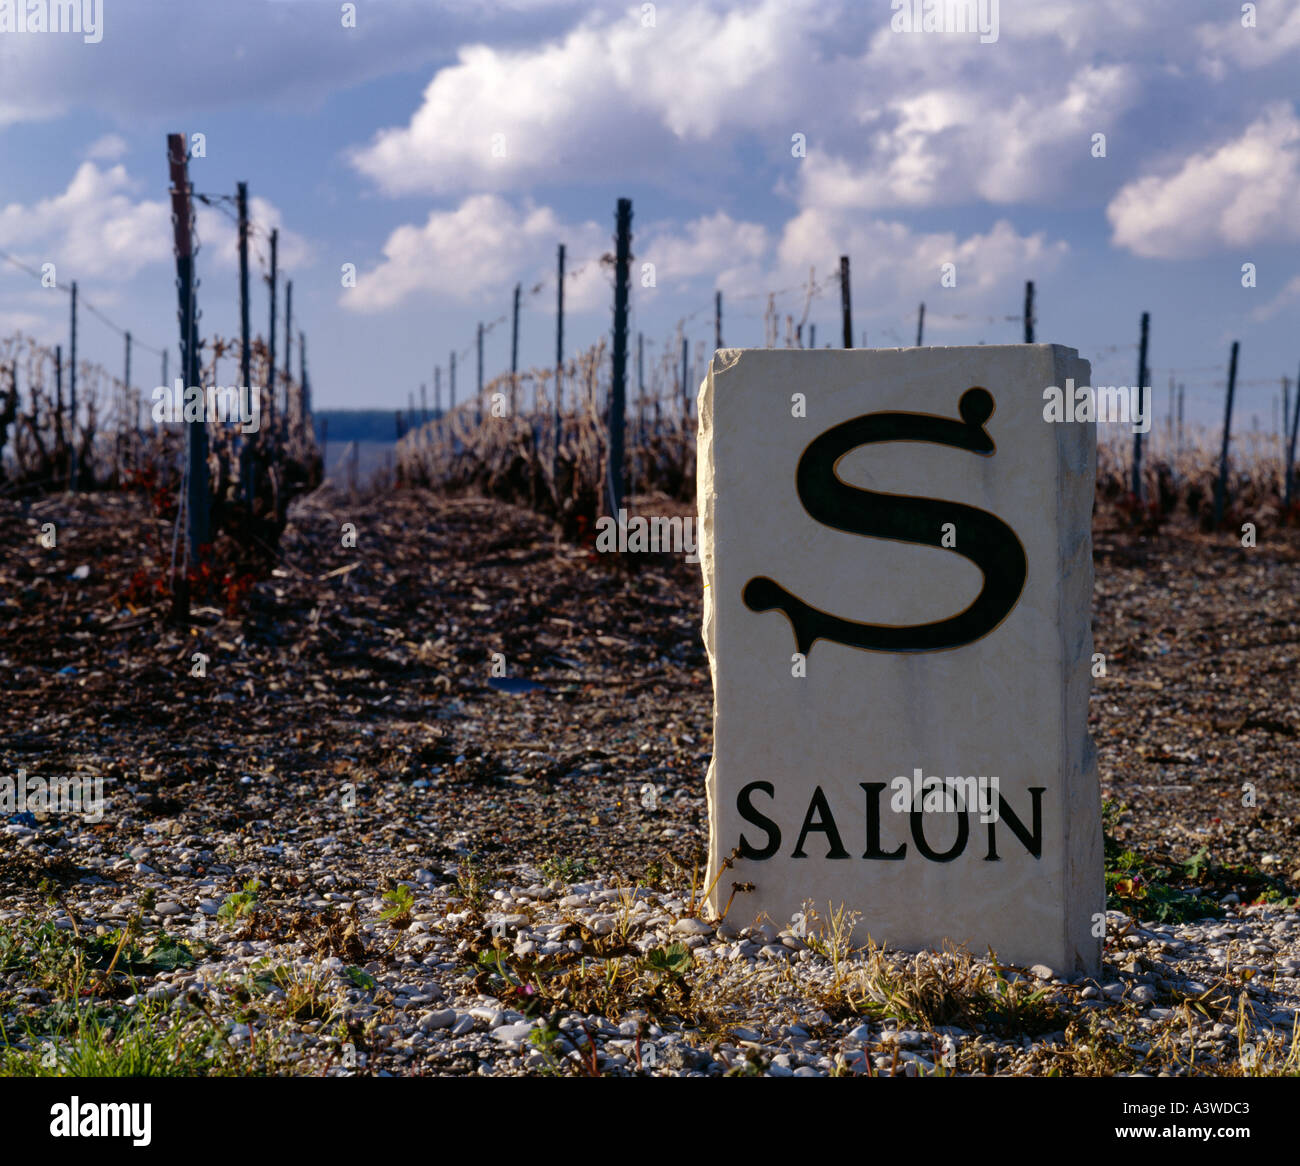 Marker stone in vineyard of champagne salon at le mesnil sur oger stock photo royalty free for Salon blanc de blancs le mesnil sur oger